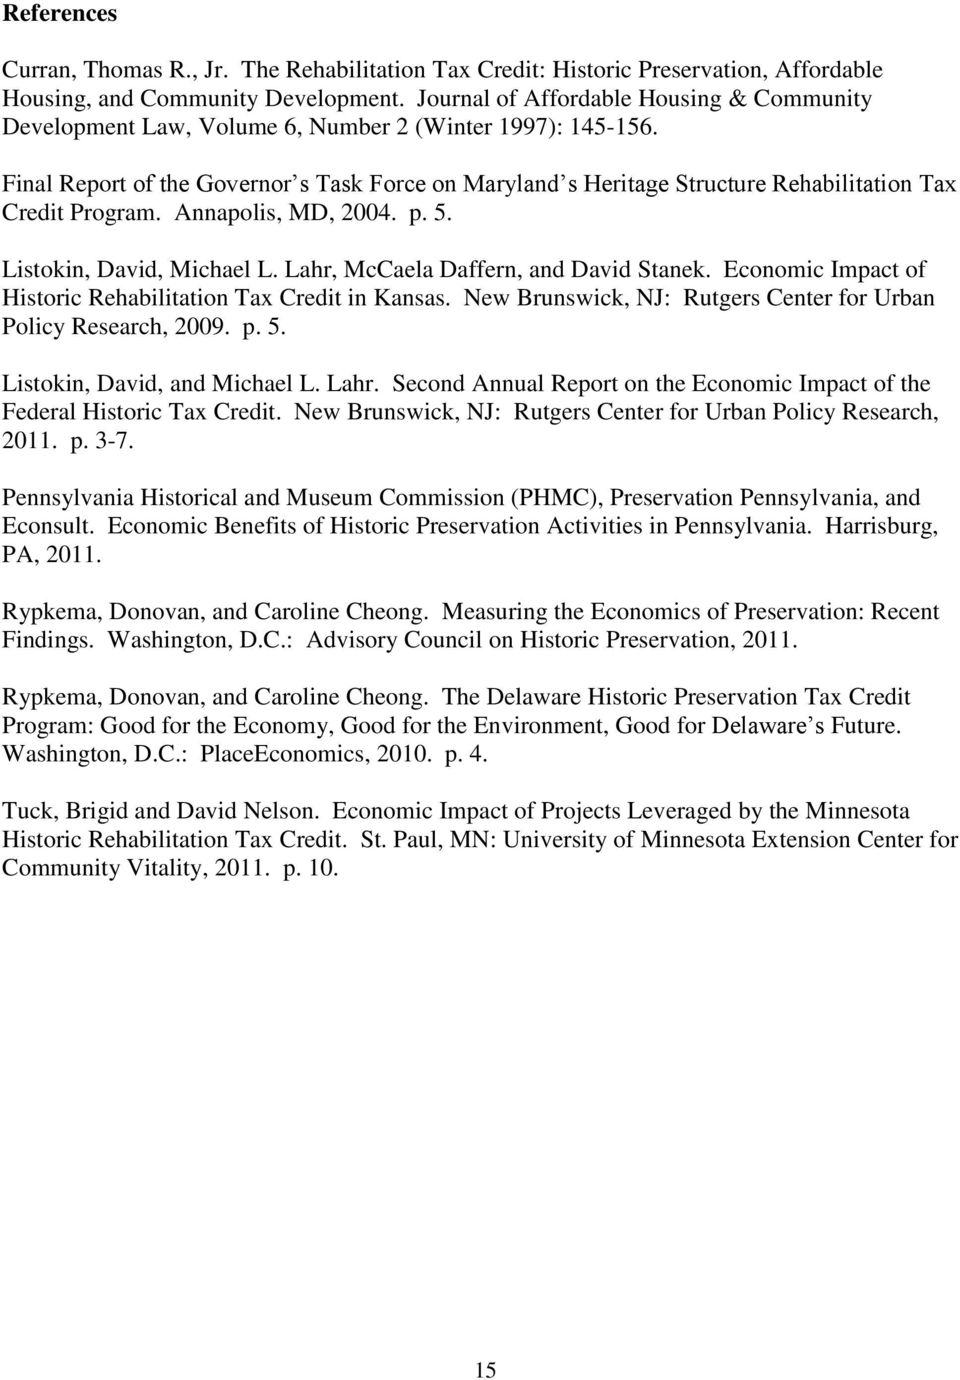 Final Report of the Governor s Task Force on Maryland s Heritage Structure Rehabilitation Tax Credit Program. Annapolis, MD, 2004. p. 5. Listokin, David, Michael L.